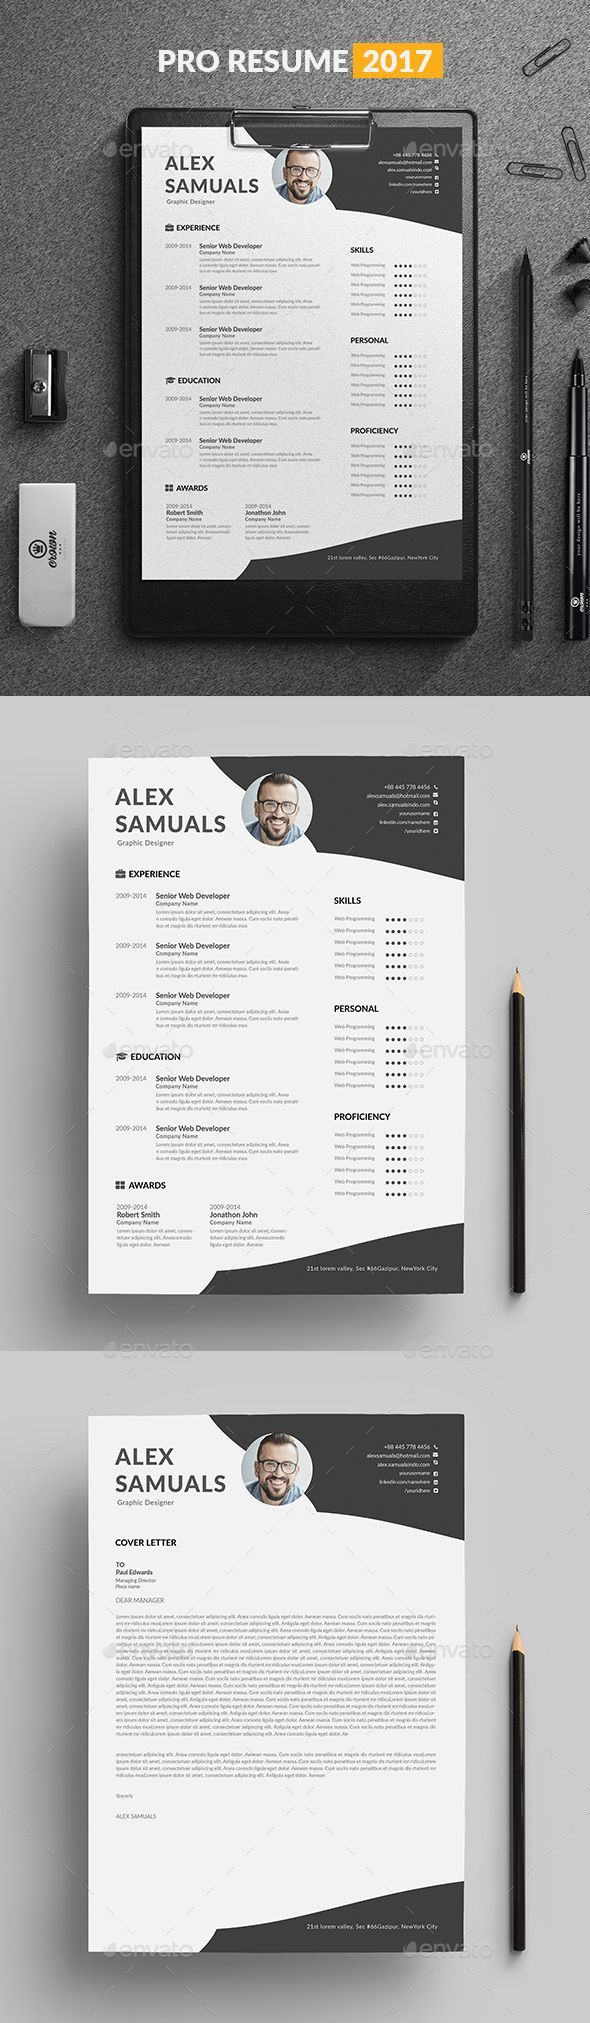 Cool Resume Cover Letter Templates Psd Resume Templates Check